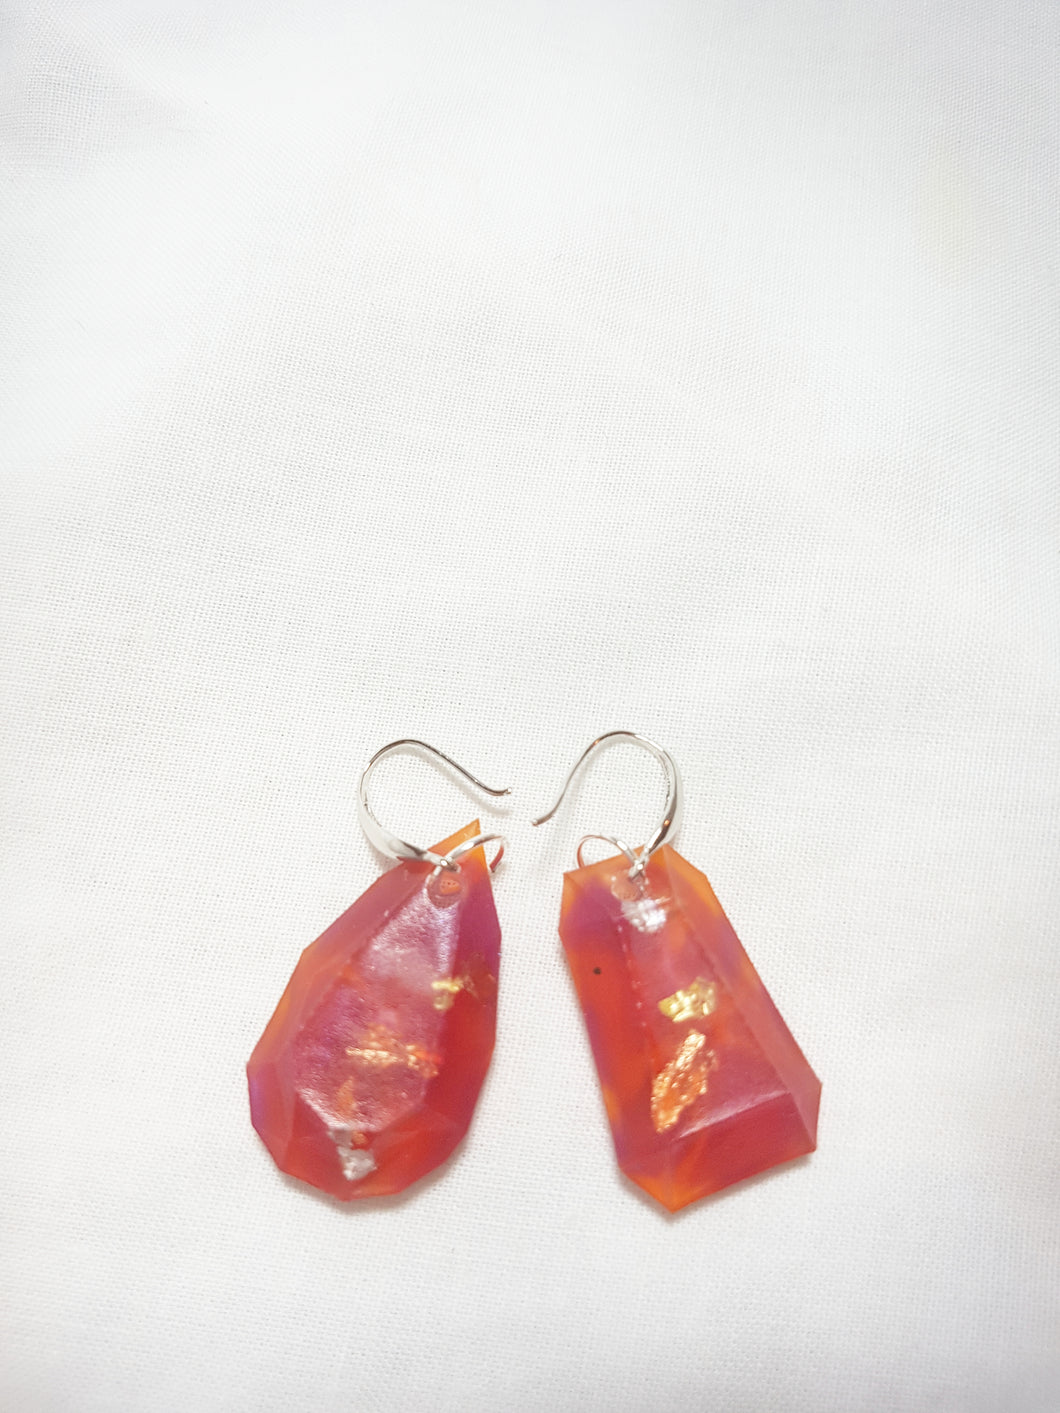 Peach Jewel Earrings